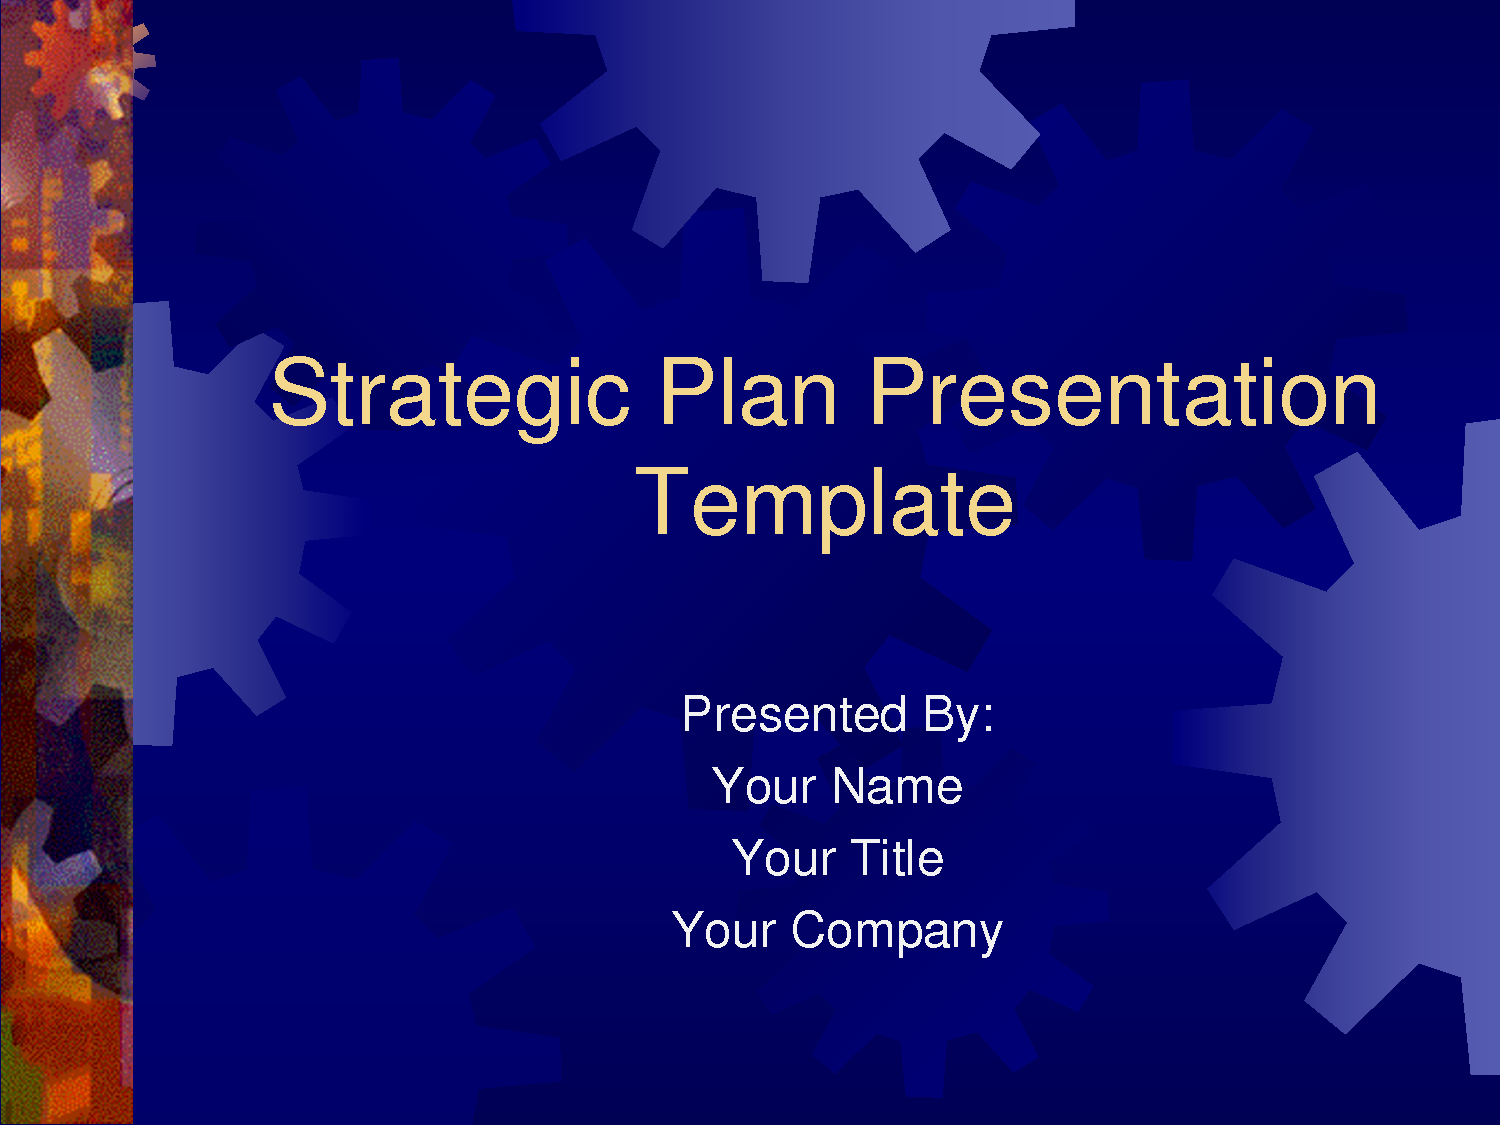 Strategic Plan Template Ppt Awesome Strategic Plan Powerpoint Templates Business Plan